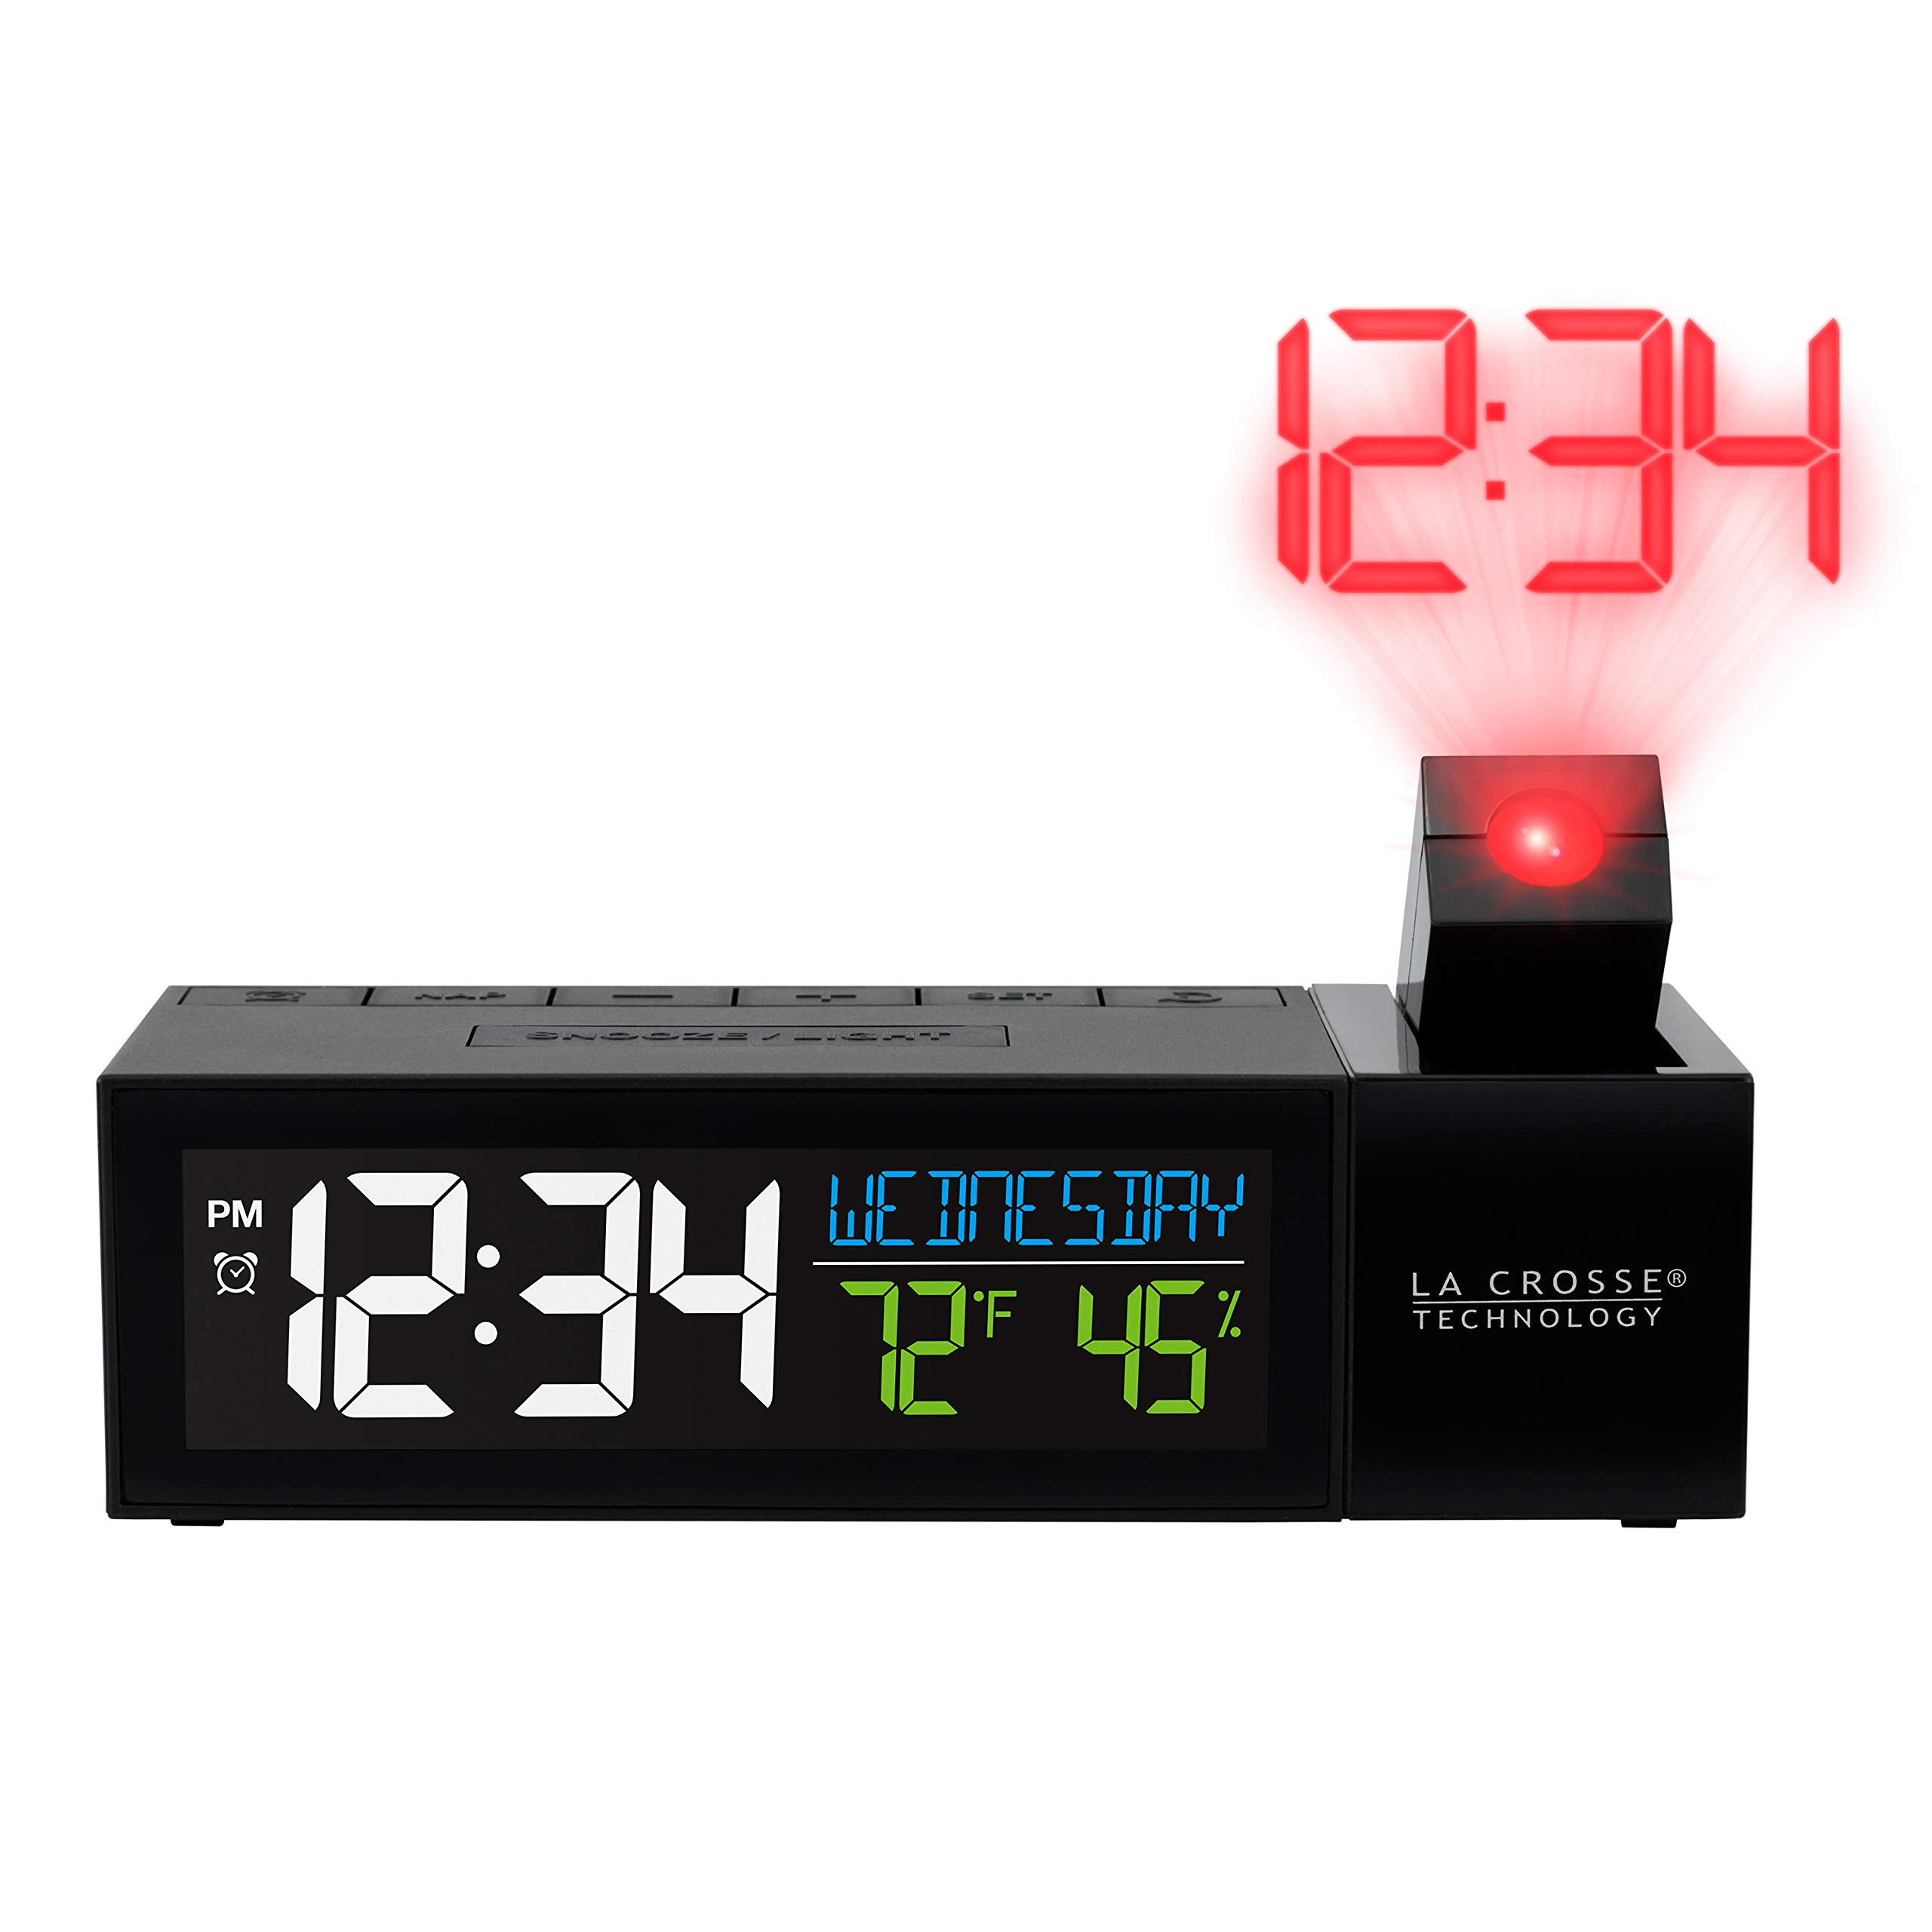 La Crosse Technology 616-1950-INT Pop-Up Bar Projection Alarm Clock with USB Charging Port Black